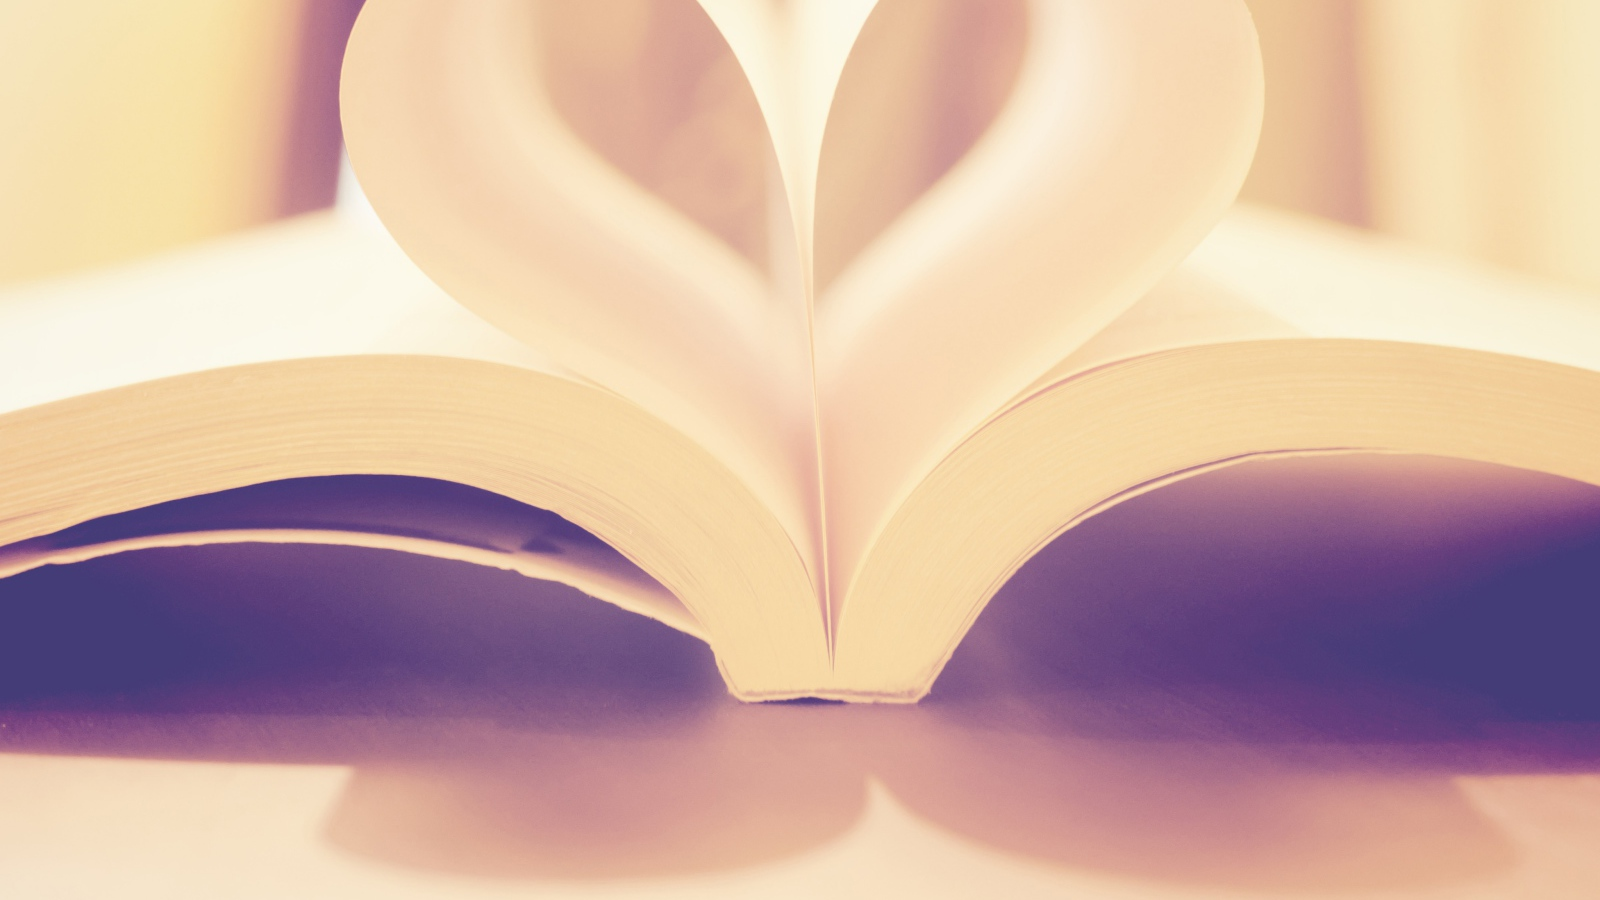 book love creative pages white hearts Desktop wallpapers 1600x900 1600x900